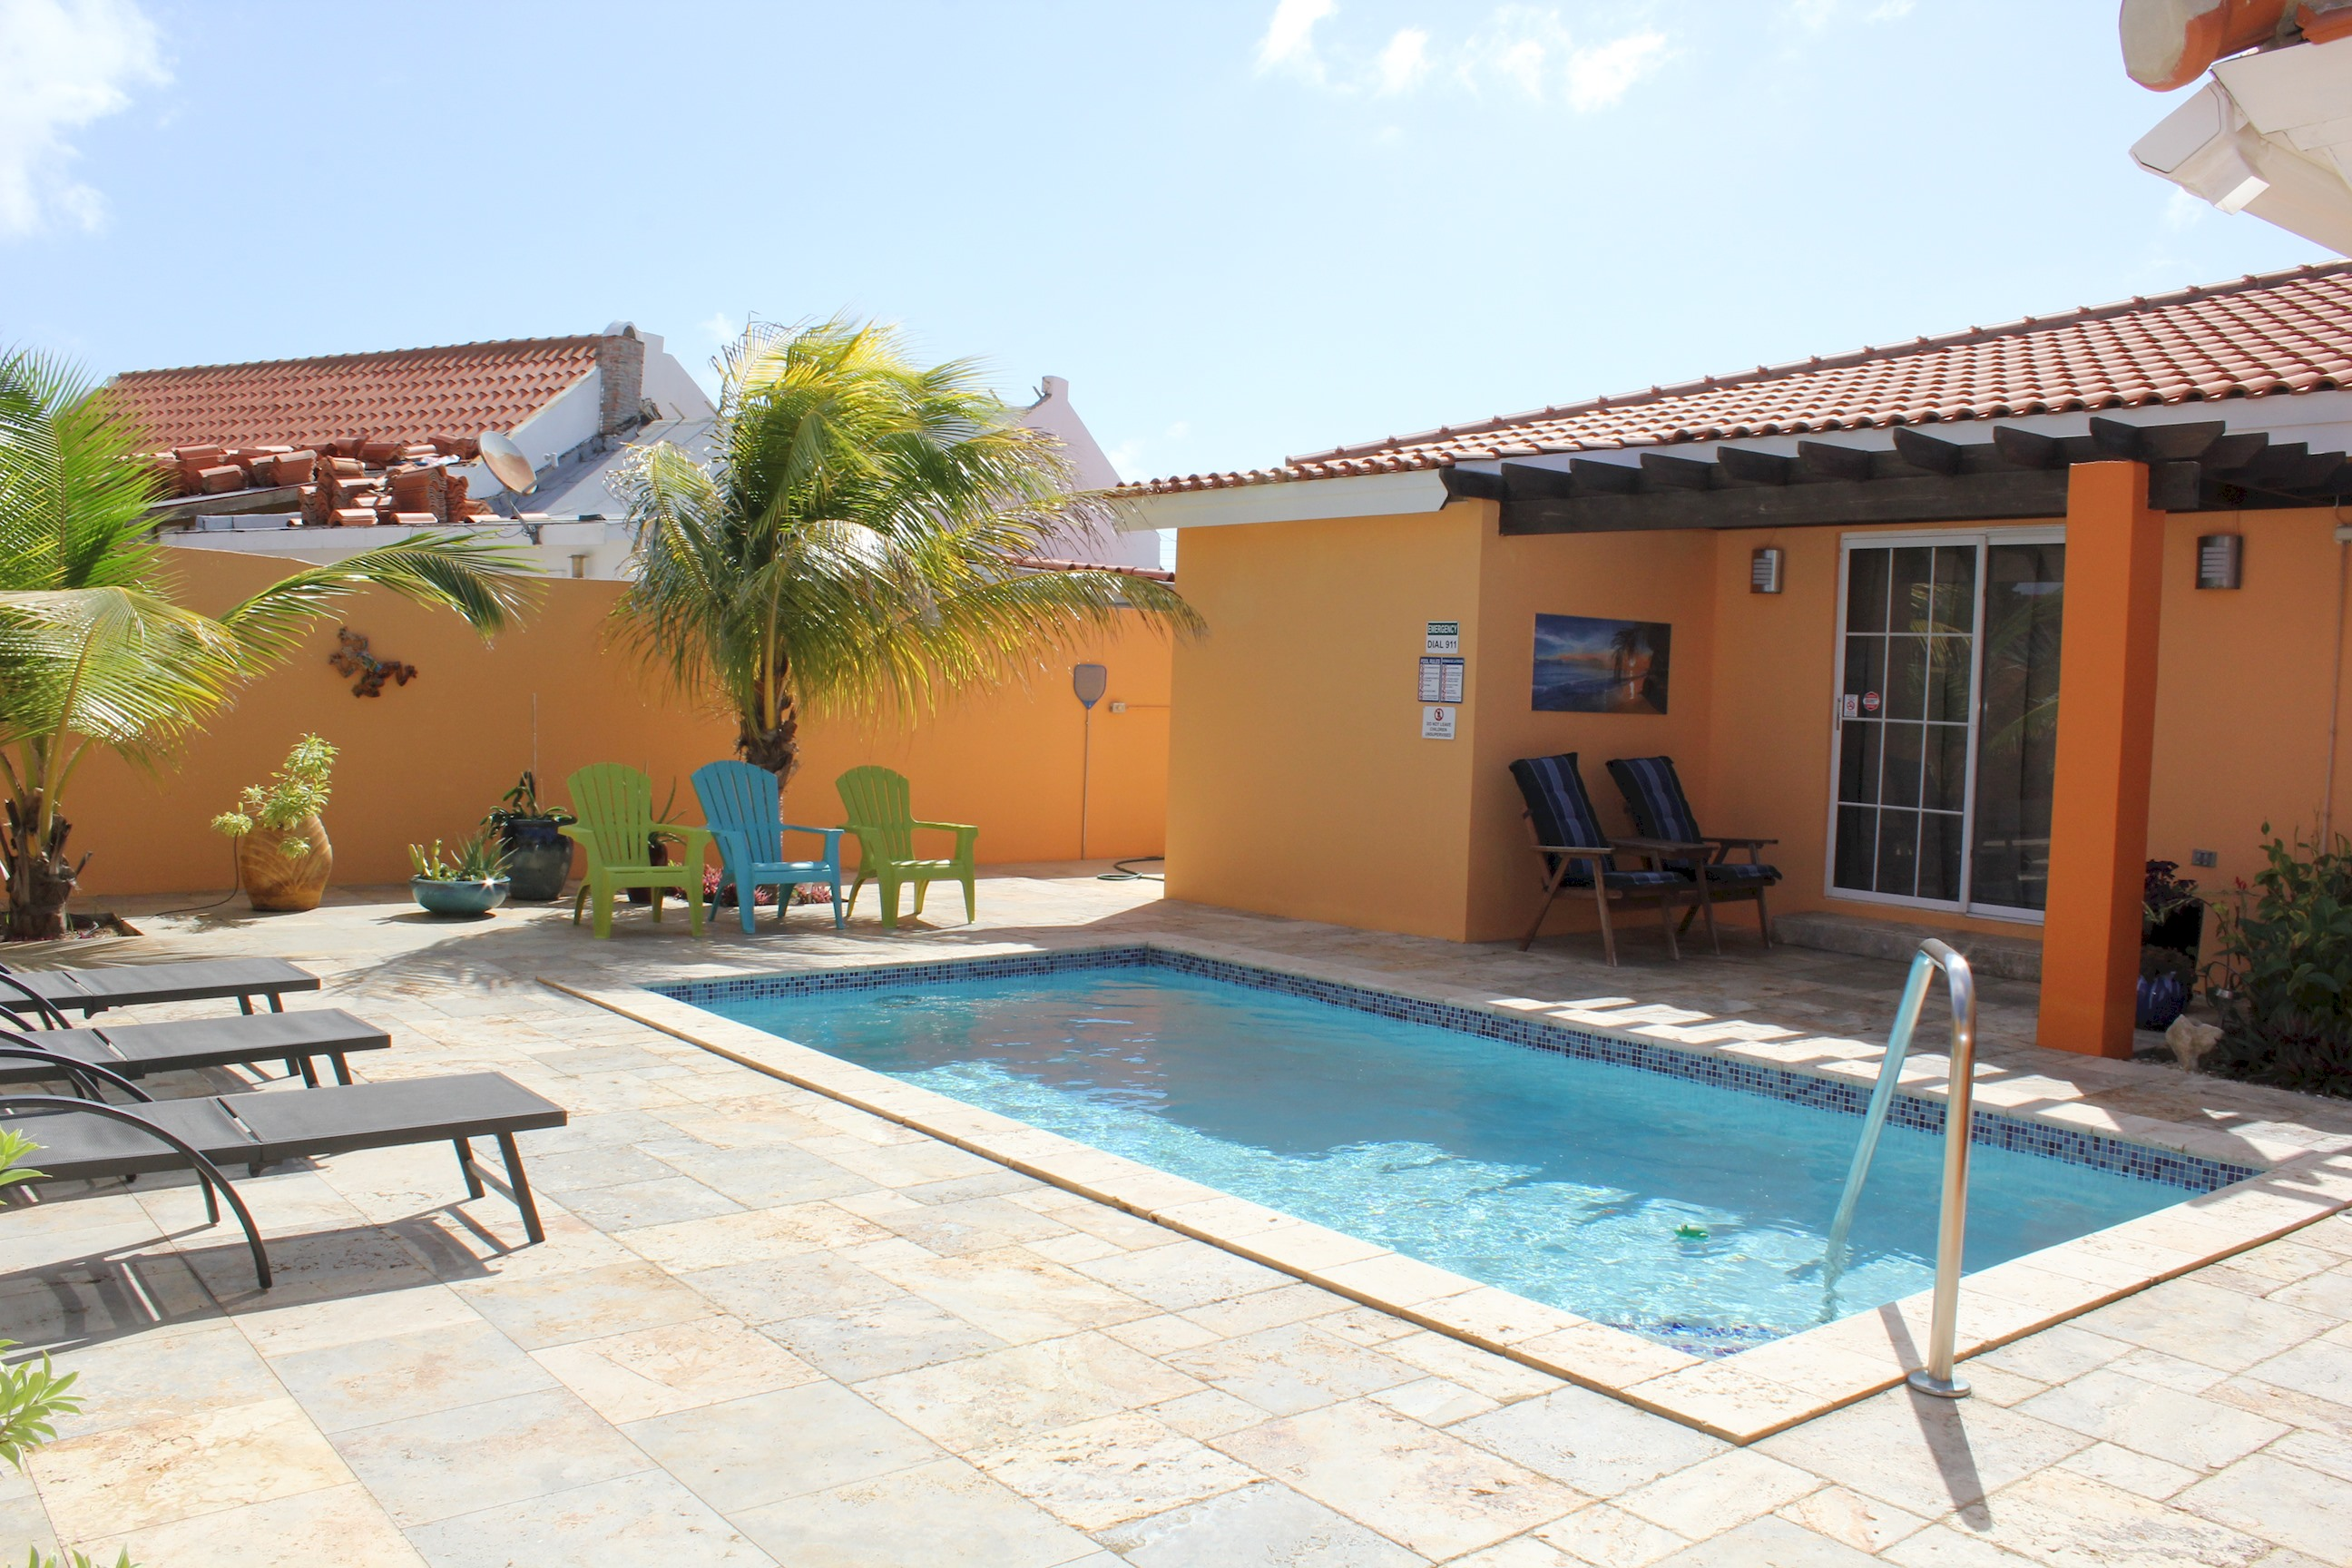 Aruba Day Dreams, only minutes drive away from the best beaches photo 23183101